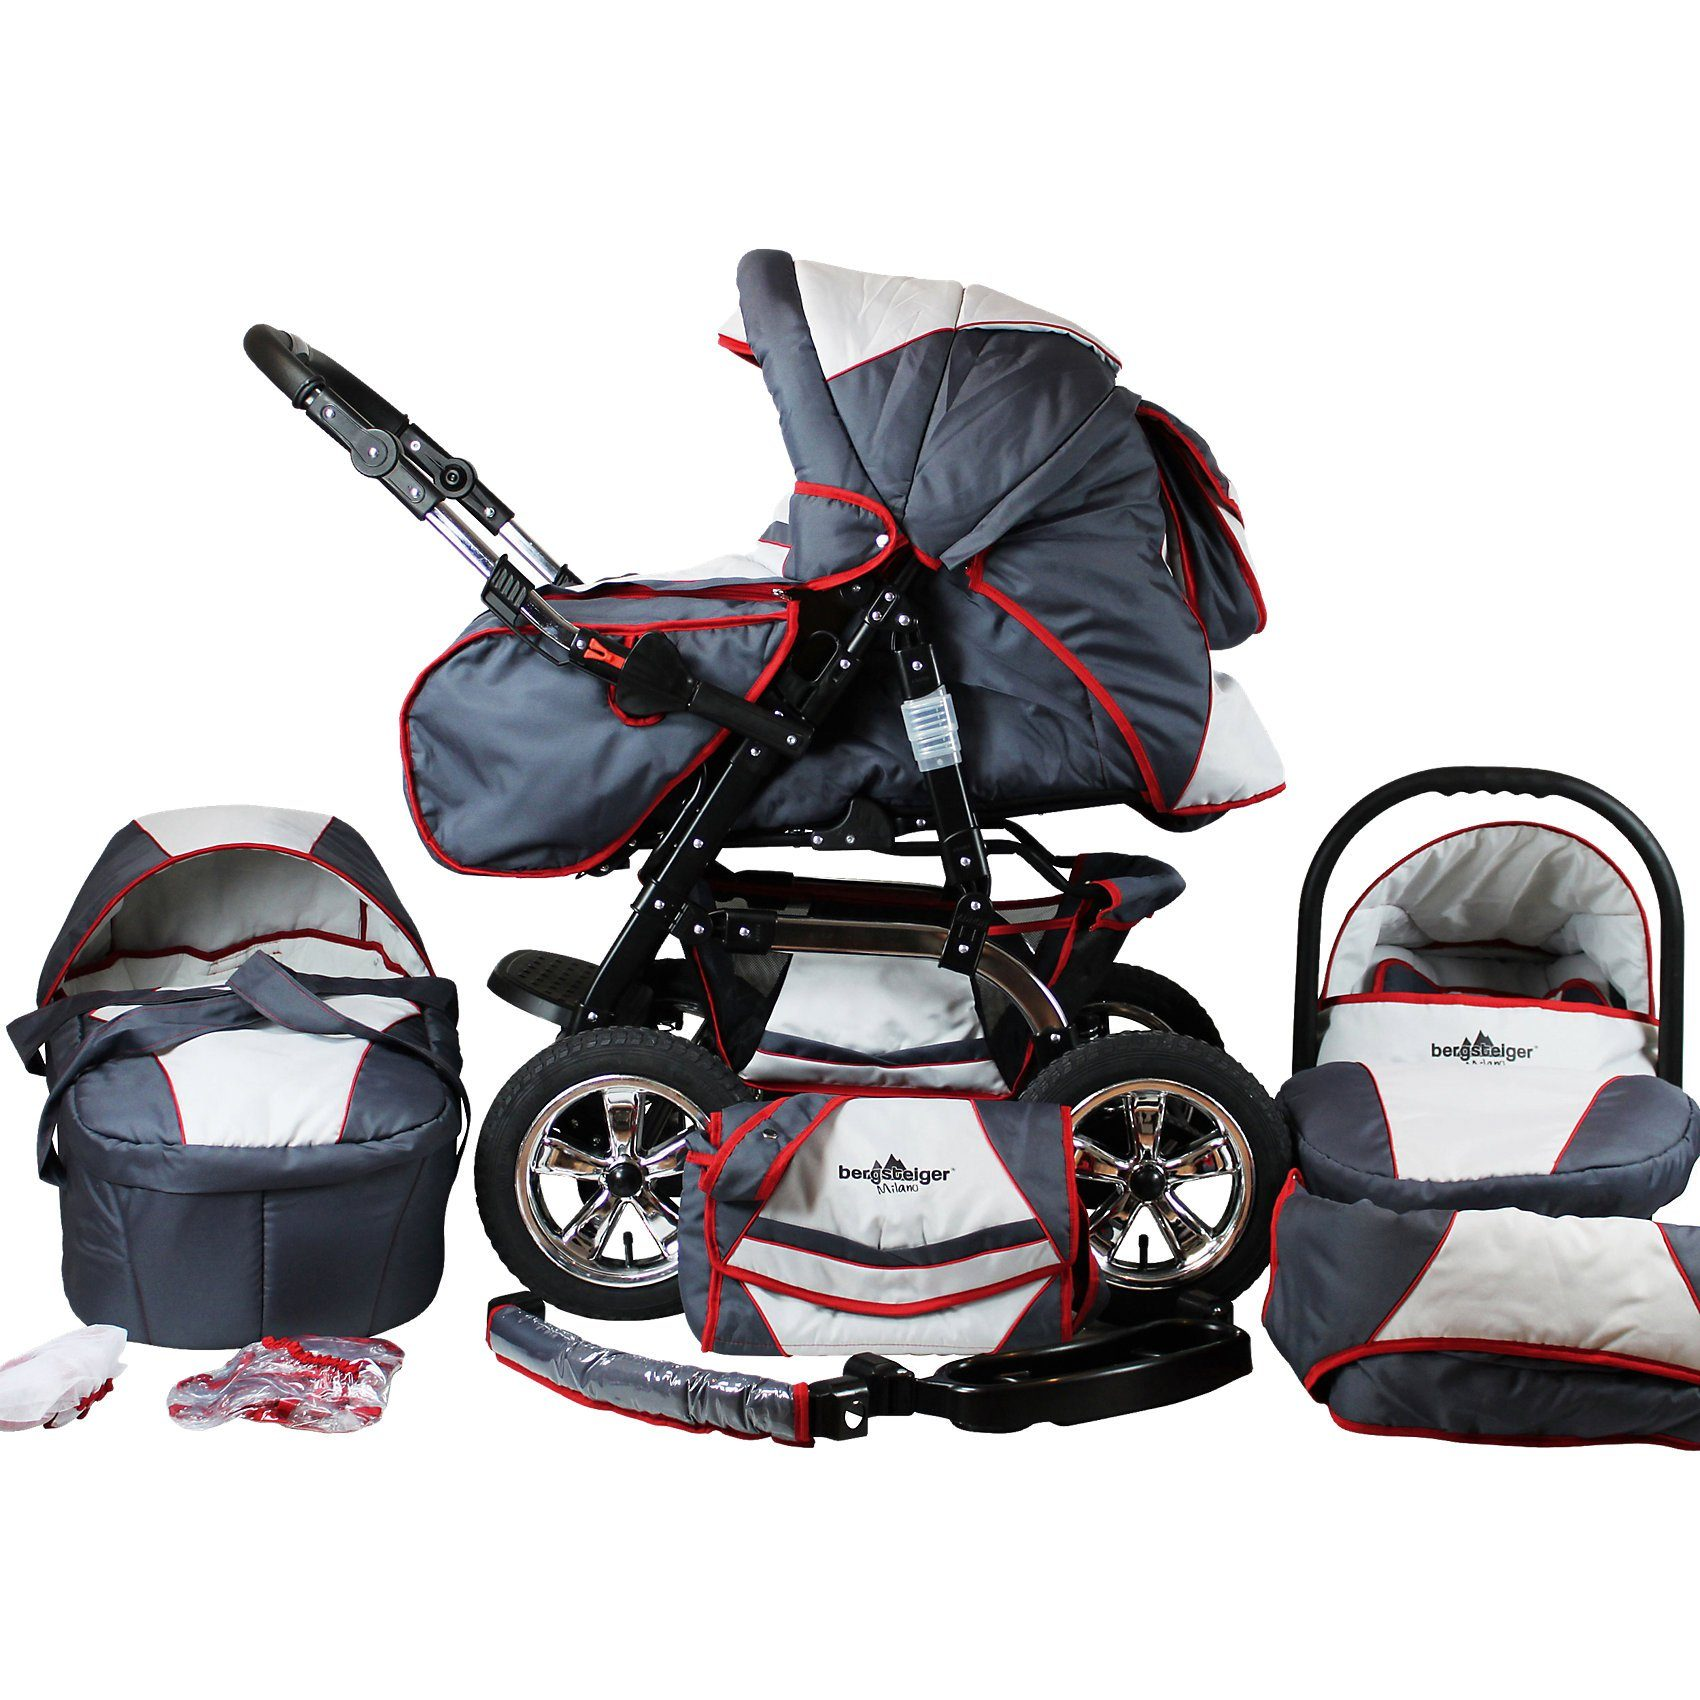 Bergsteiger Kombi Kinderwagen Milano, 10 tlg., grey & red stripes